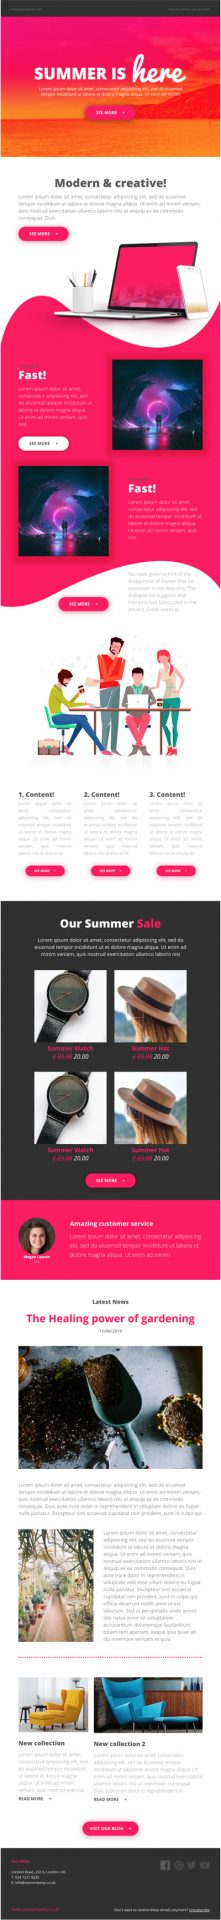 MailNinja Summer Responsive Email Template